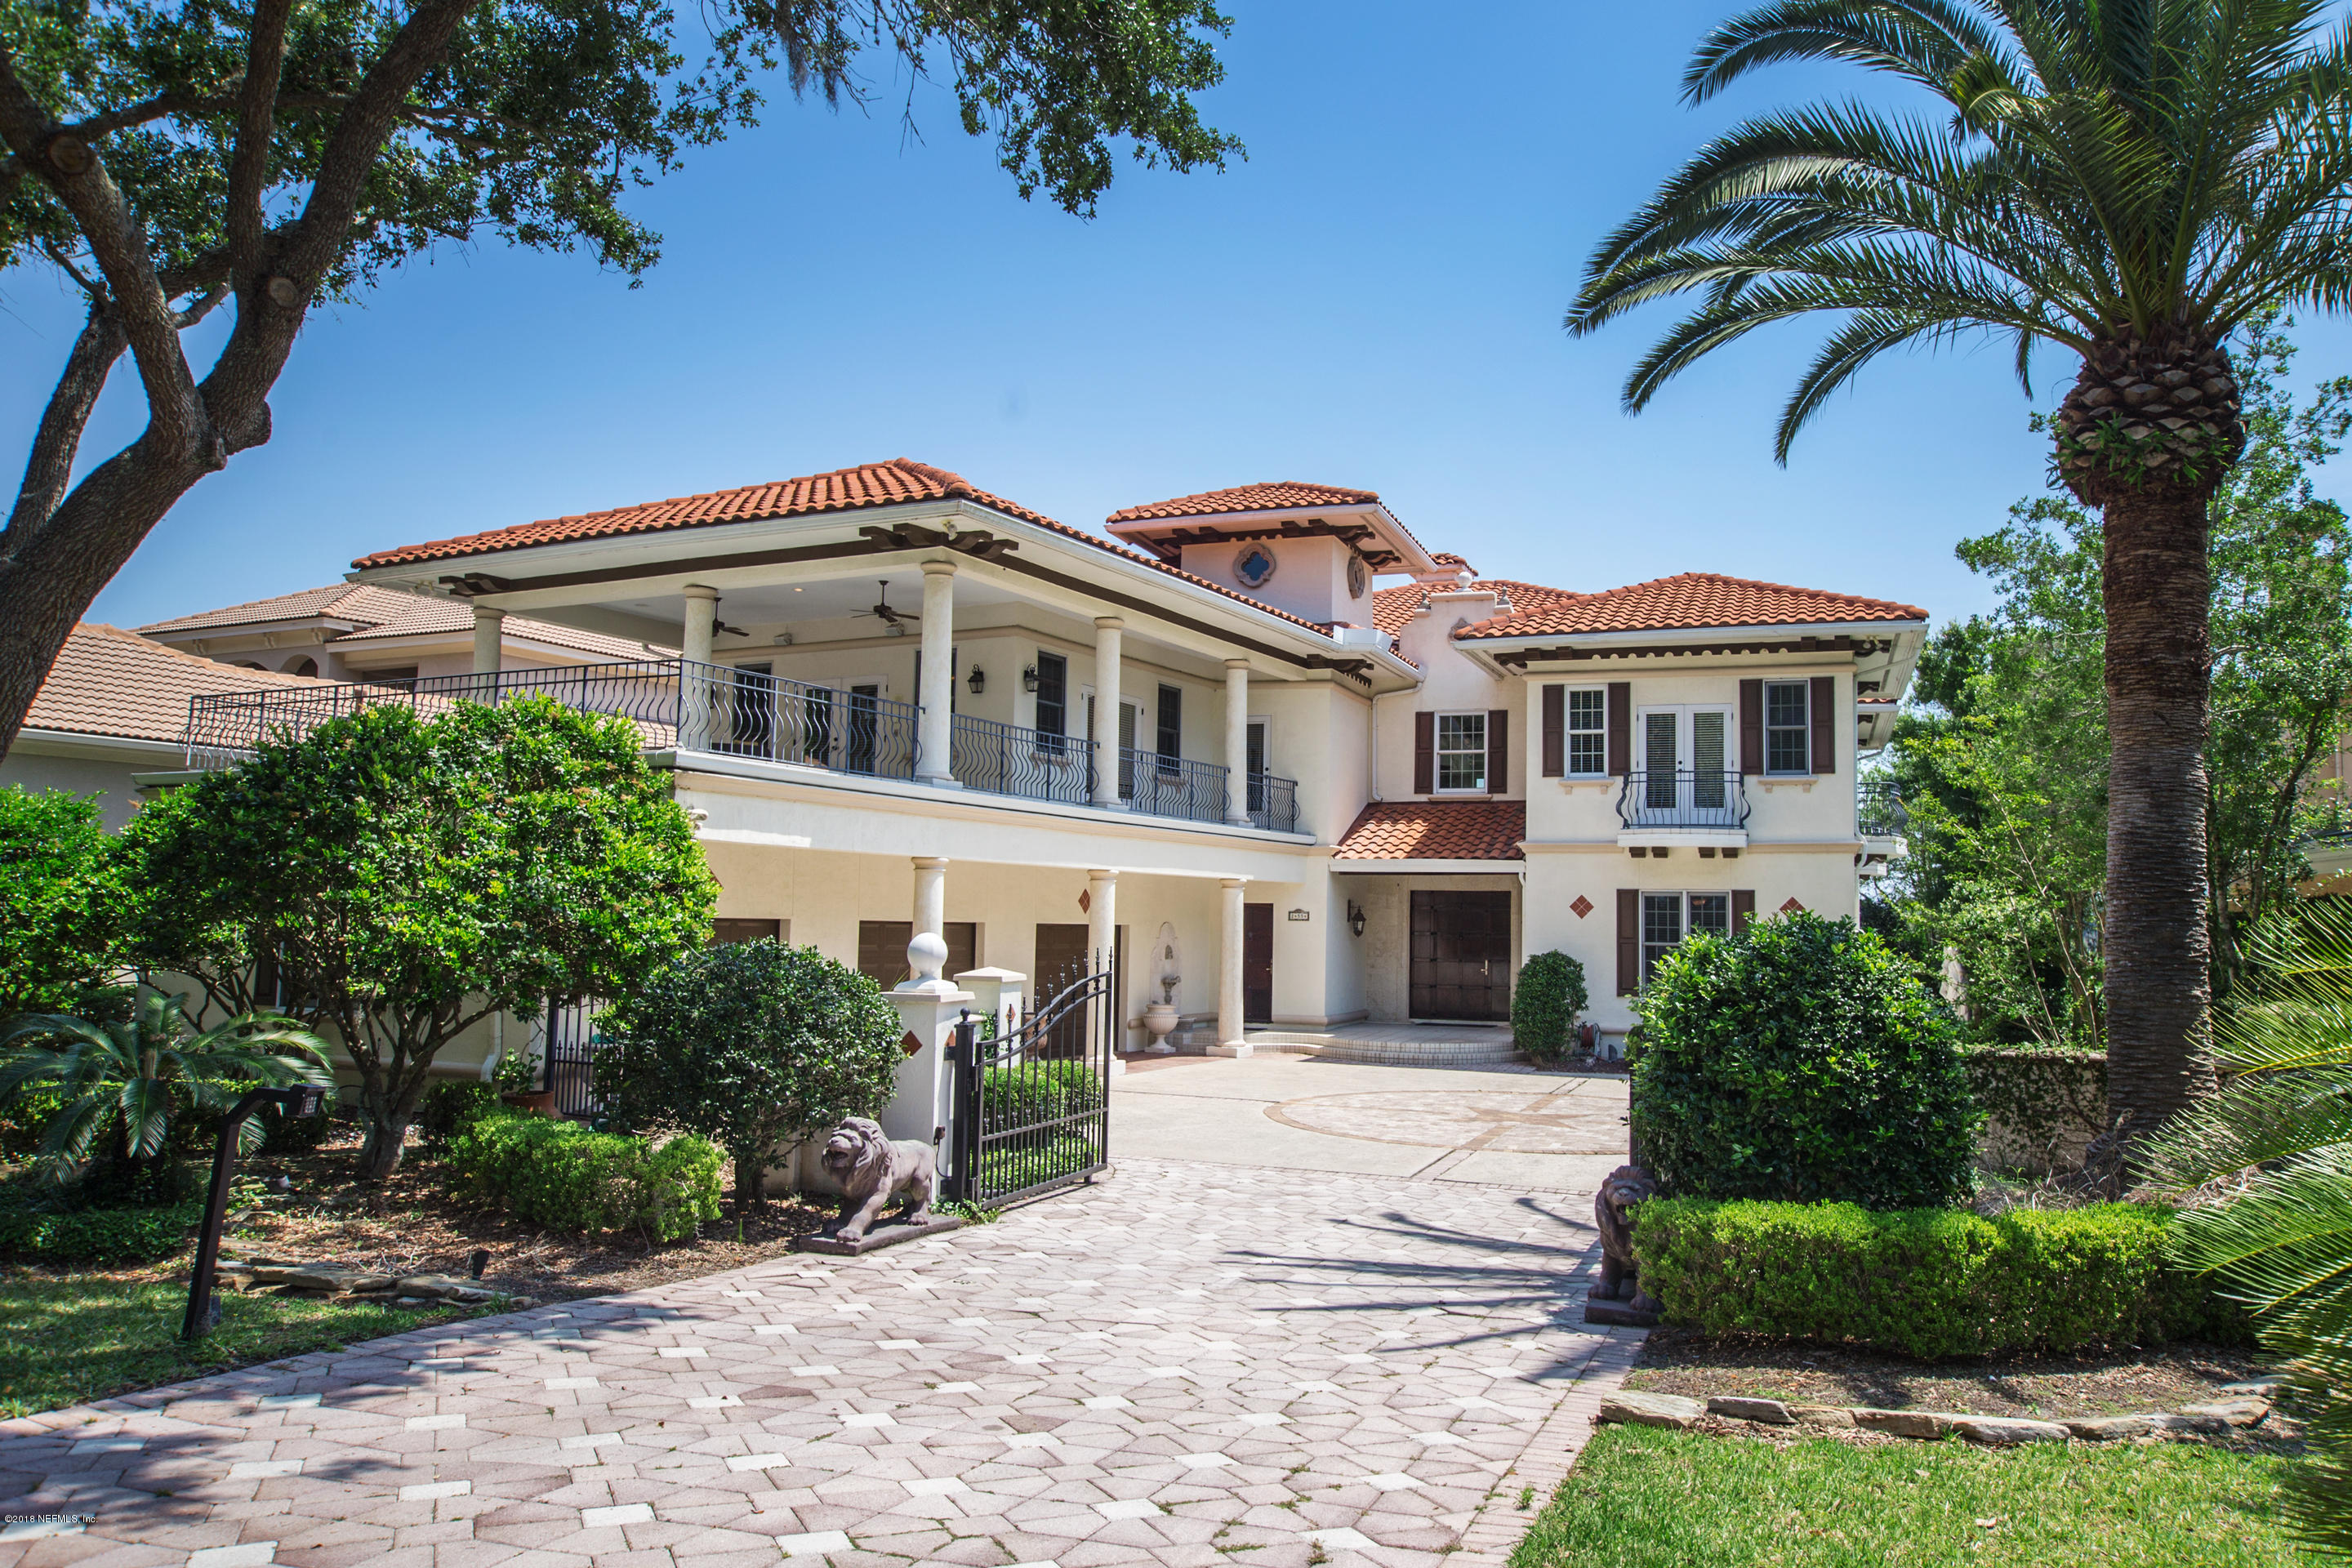 24554 HARBOUR VIEW, PONTE VEDRA BEACH, FLORIDA 32082, 4 Bedrooms Bedrooms, ,3 BathroomsBathrooms,Residential - single family,For sale,HARBOUR VIEW,936445